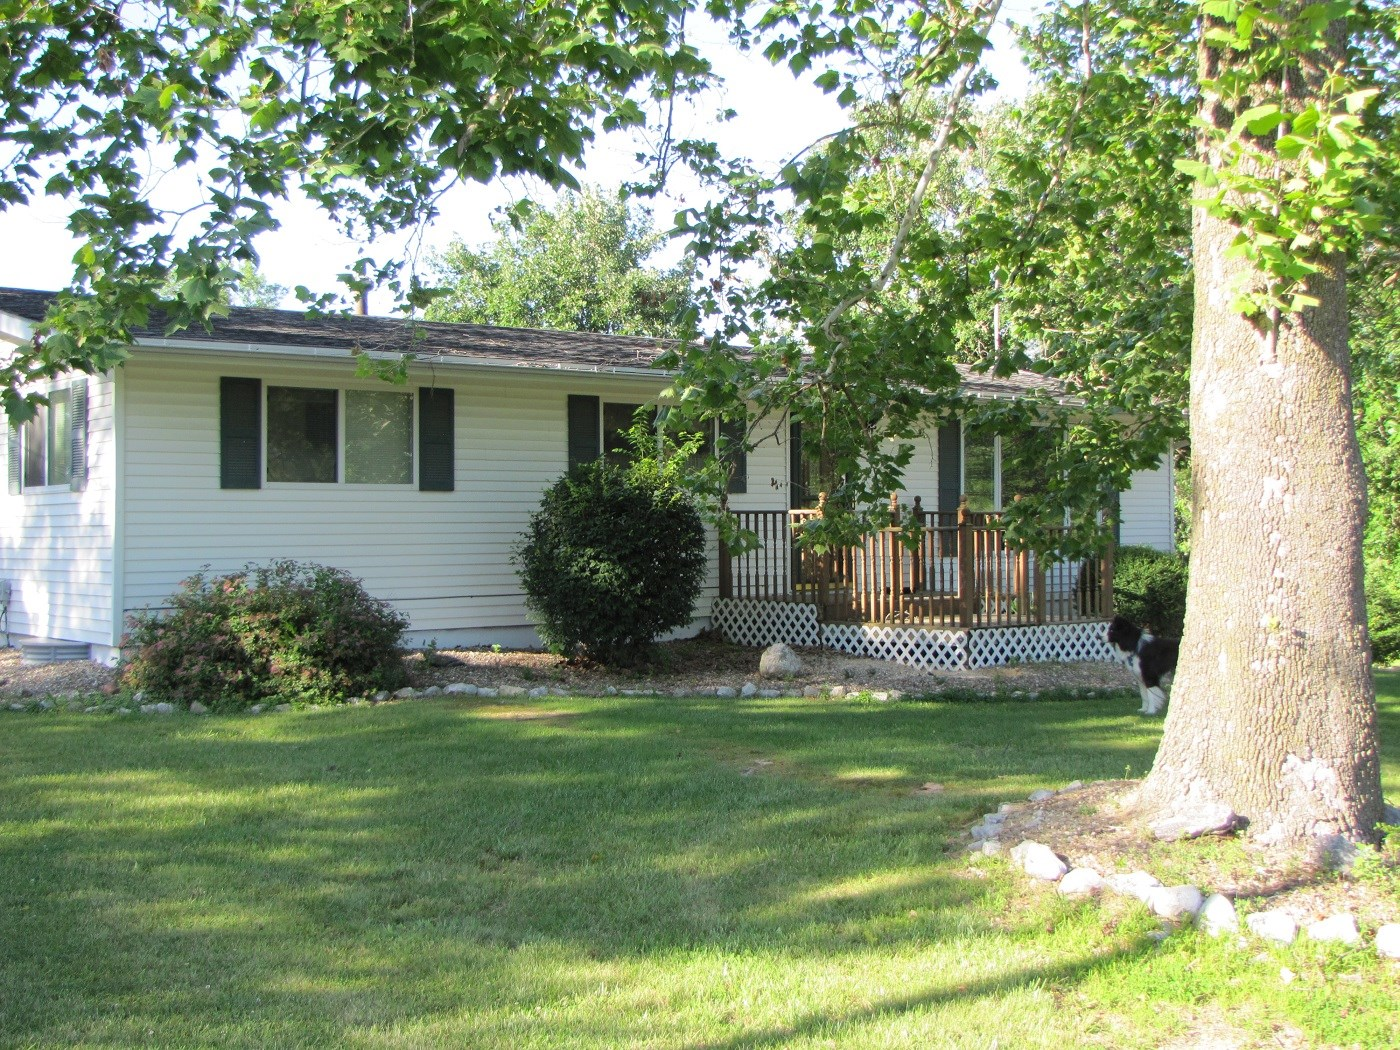 NORTHEAST MISSOURI HOUSE FOR SALE WITH BASEMENT, CORNER LOT